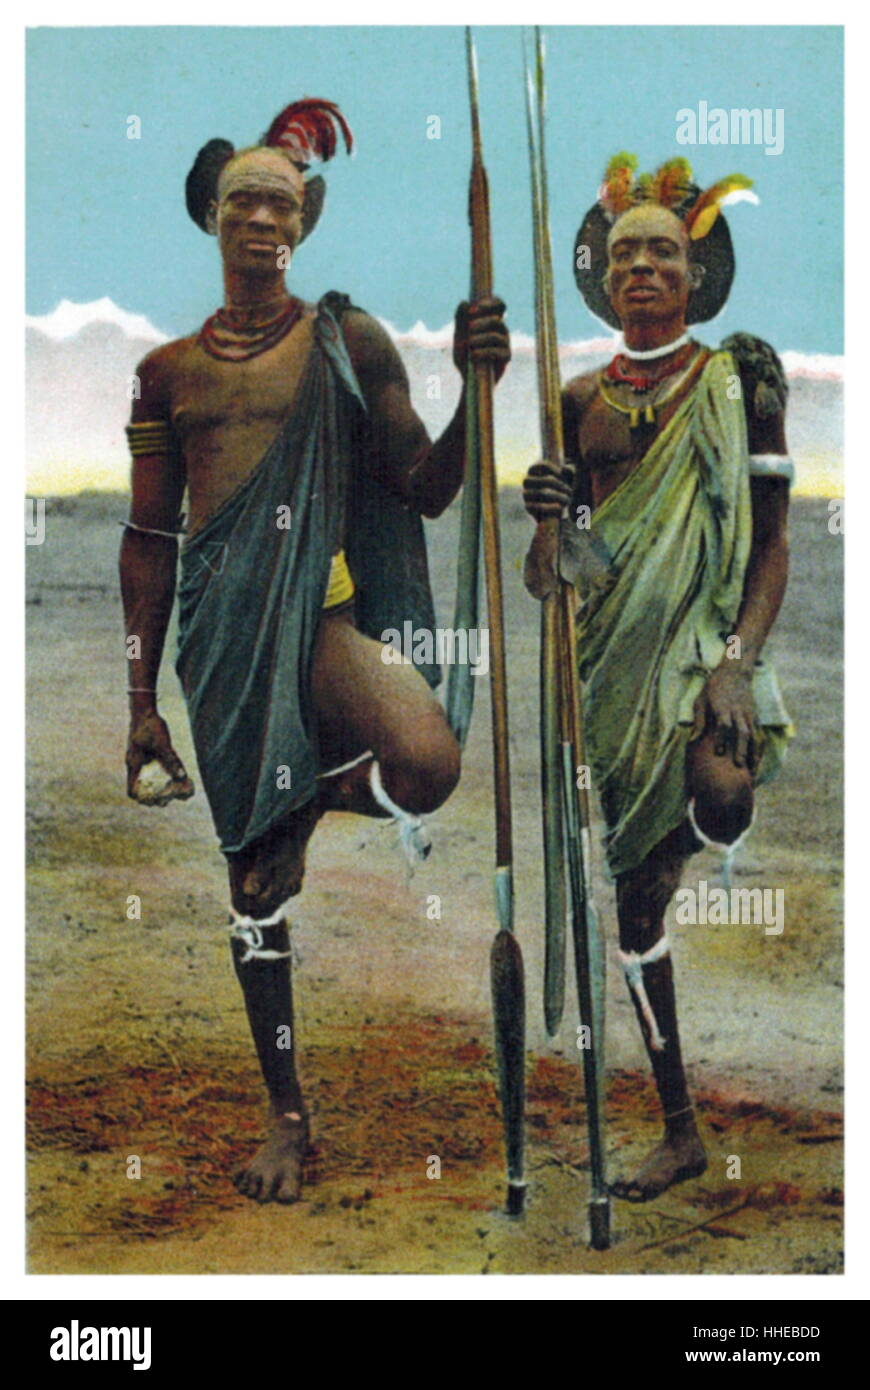 Warriors of the Shilluk; Luo Nilotic people of Southern Sudan, living on both banks of the river Nile circa 1910 - Stock Image